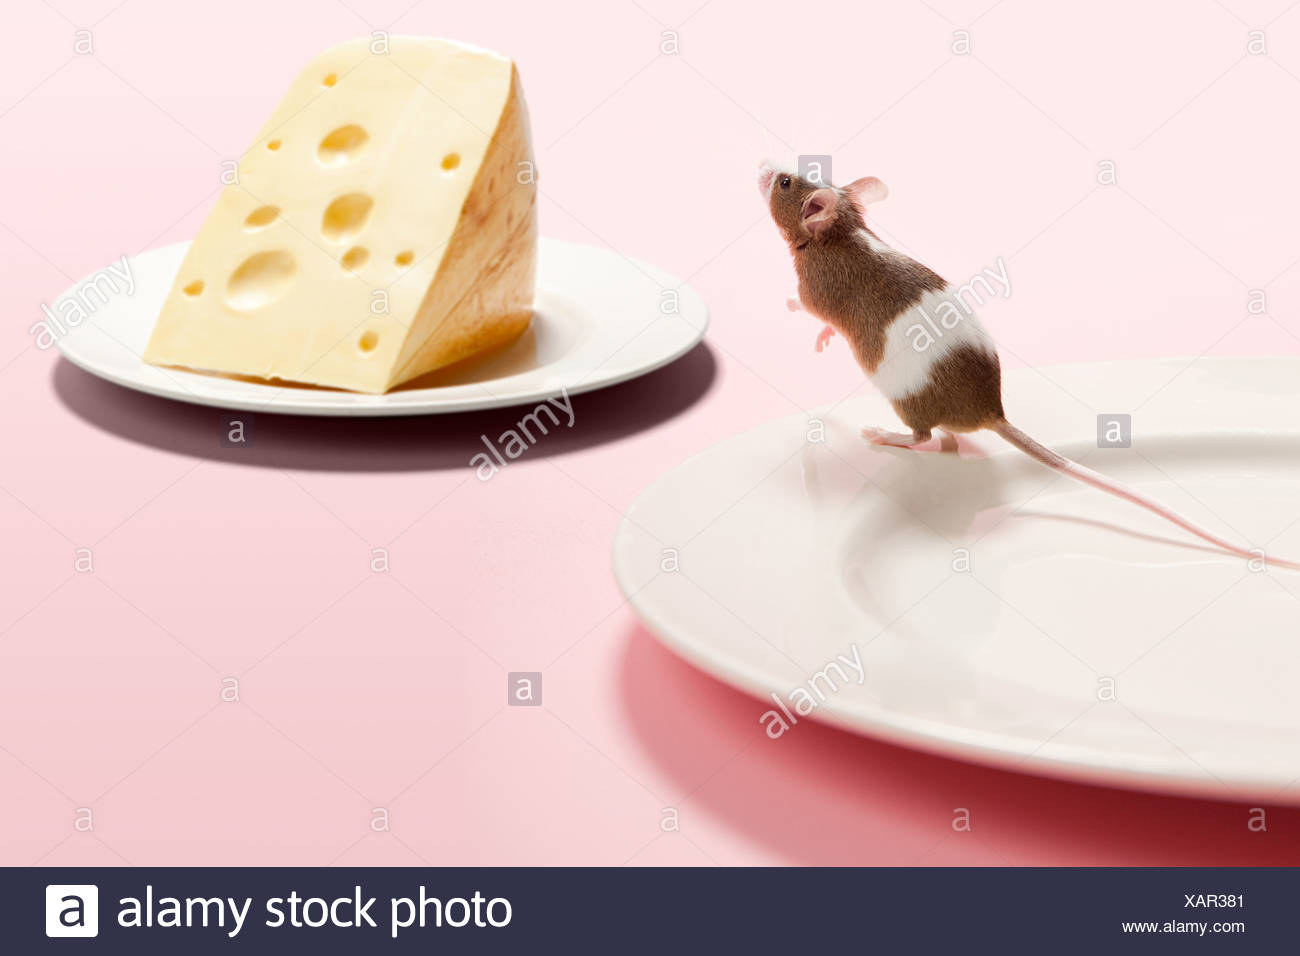 Mouse and cheese on plate - Stock Image